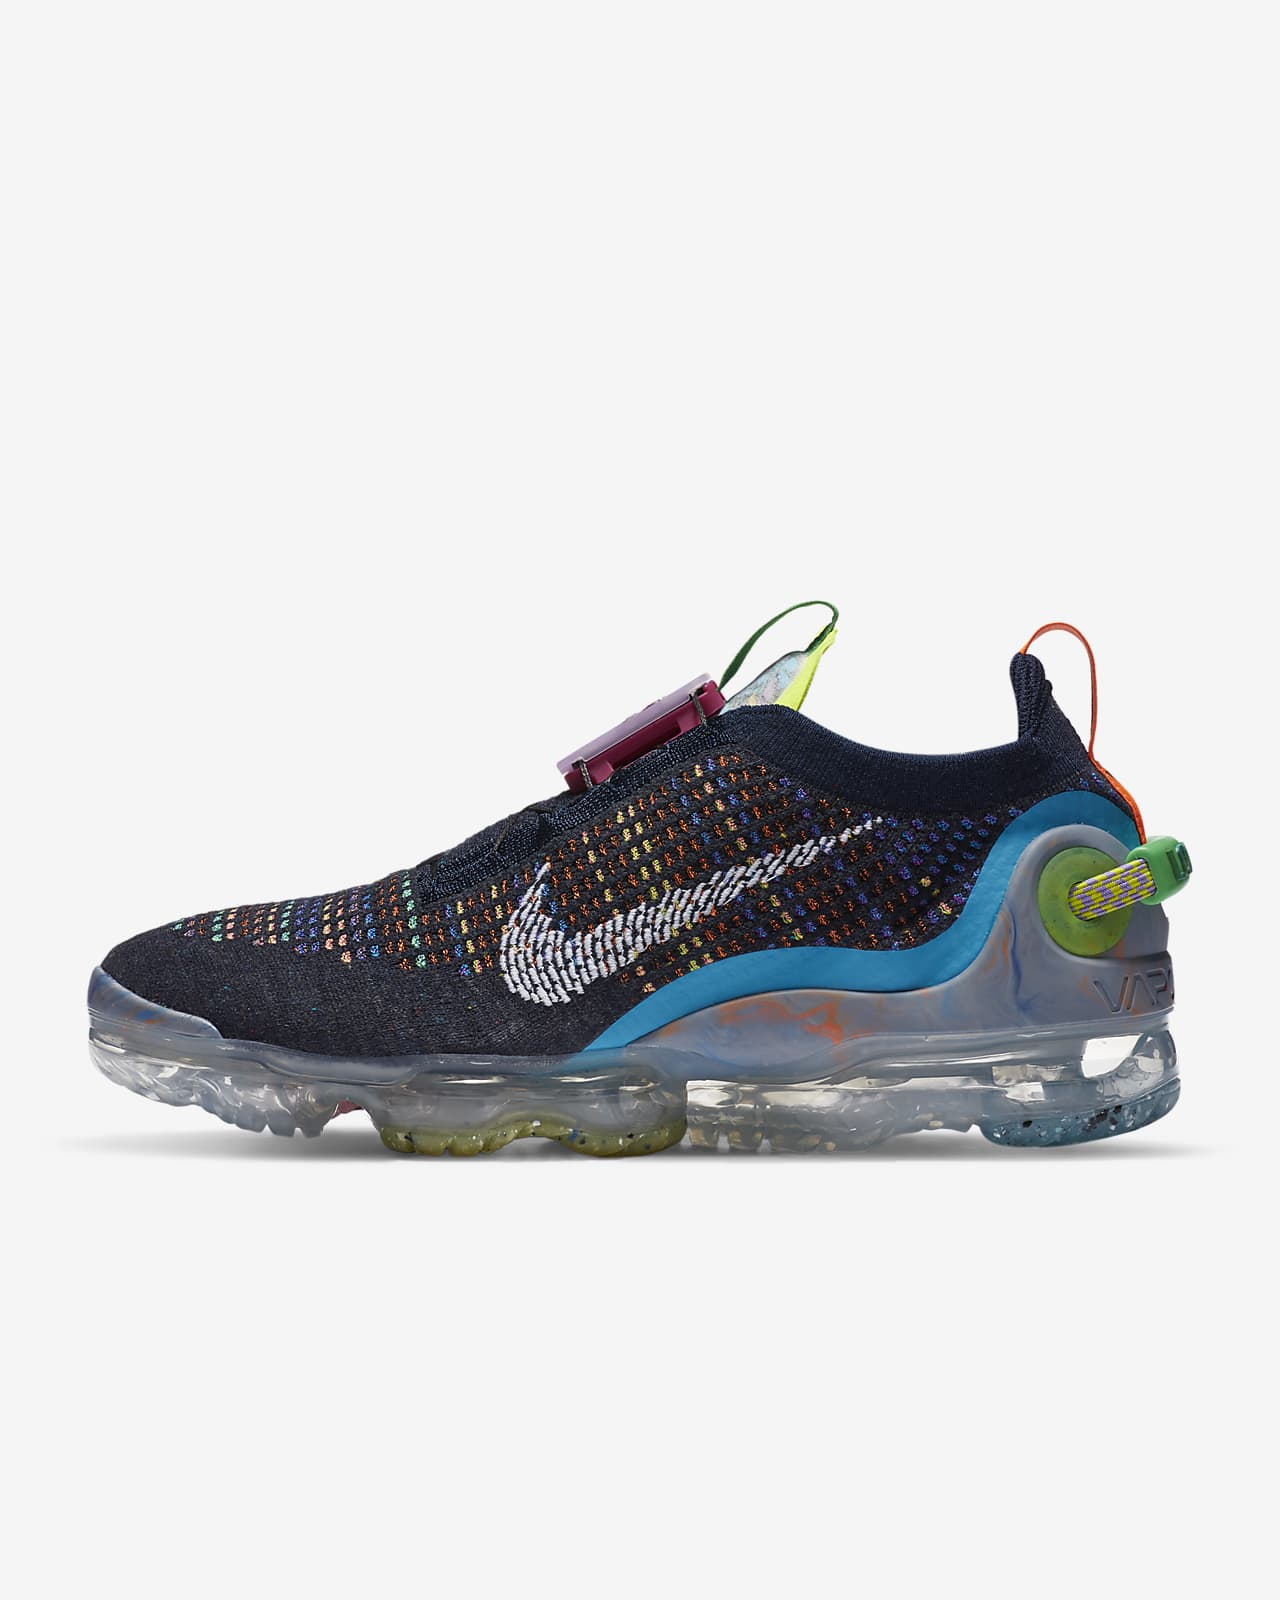 Chaussure Nike Air VaporMax 2020 FK pour Homme